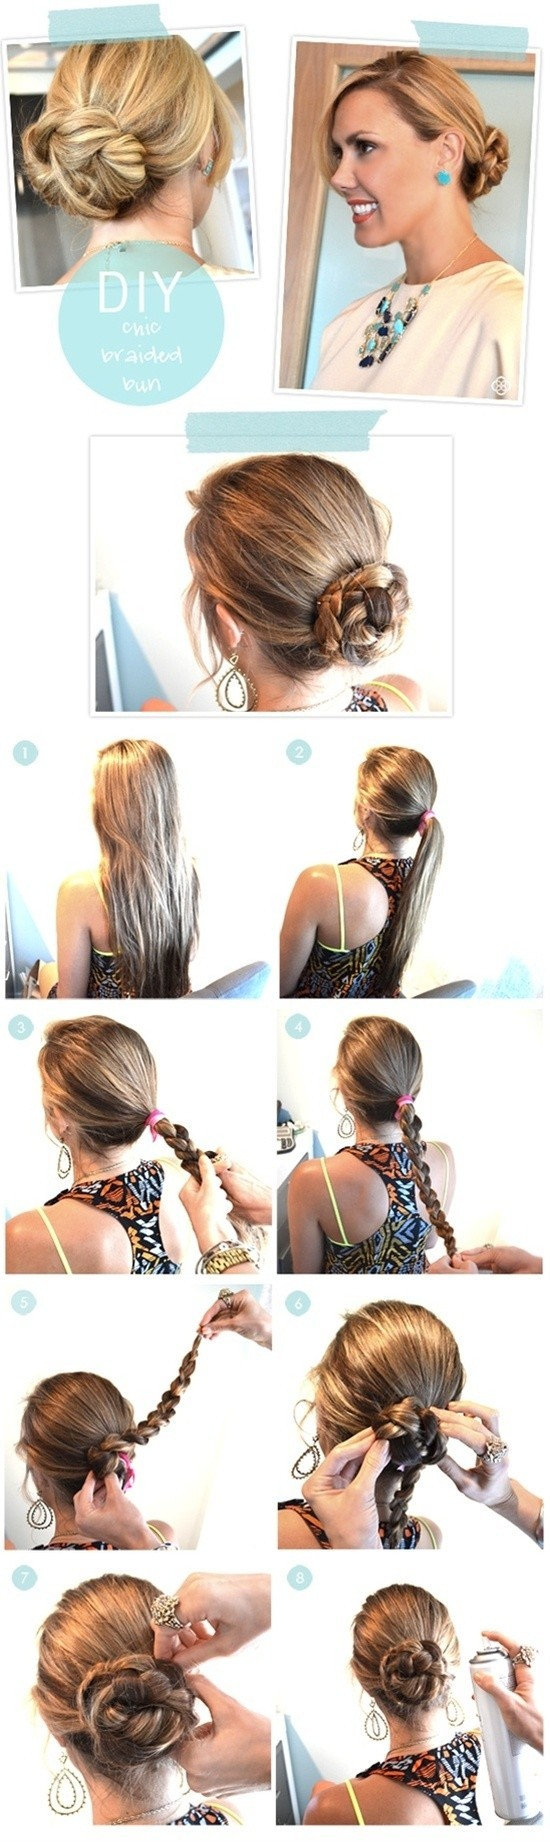 Super Step By Step Hairstyles For Long Hair Long Hairstyles Ideas Short Hairstyles For Black Women Fulllsitofus